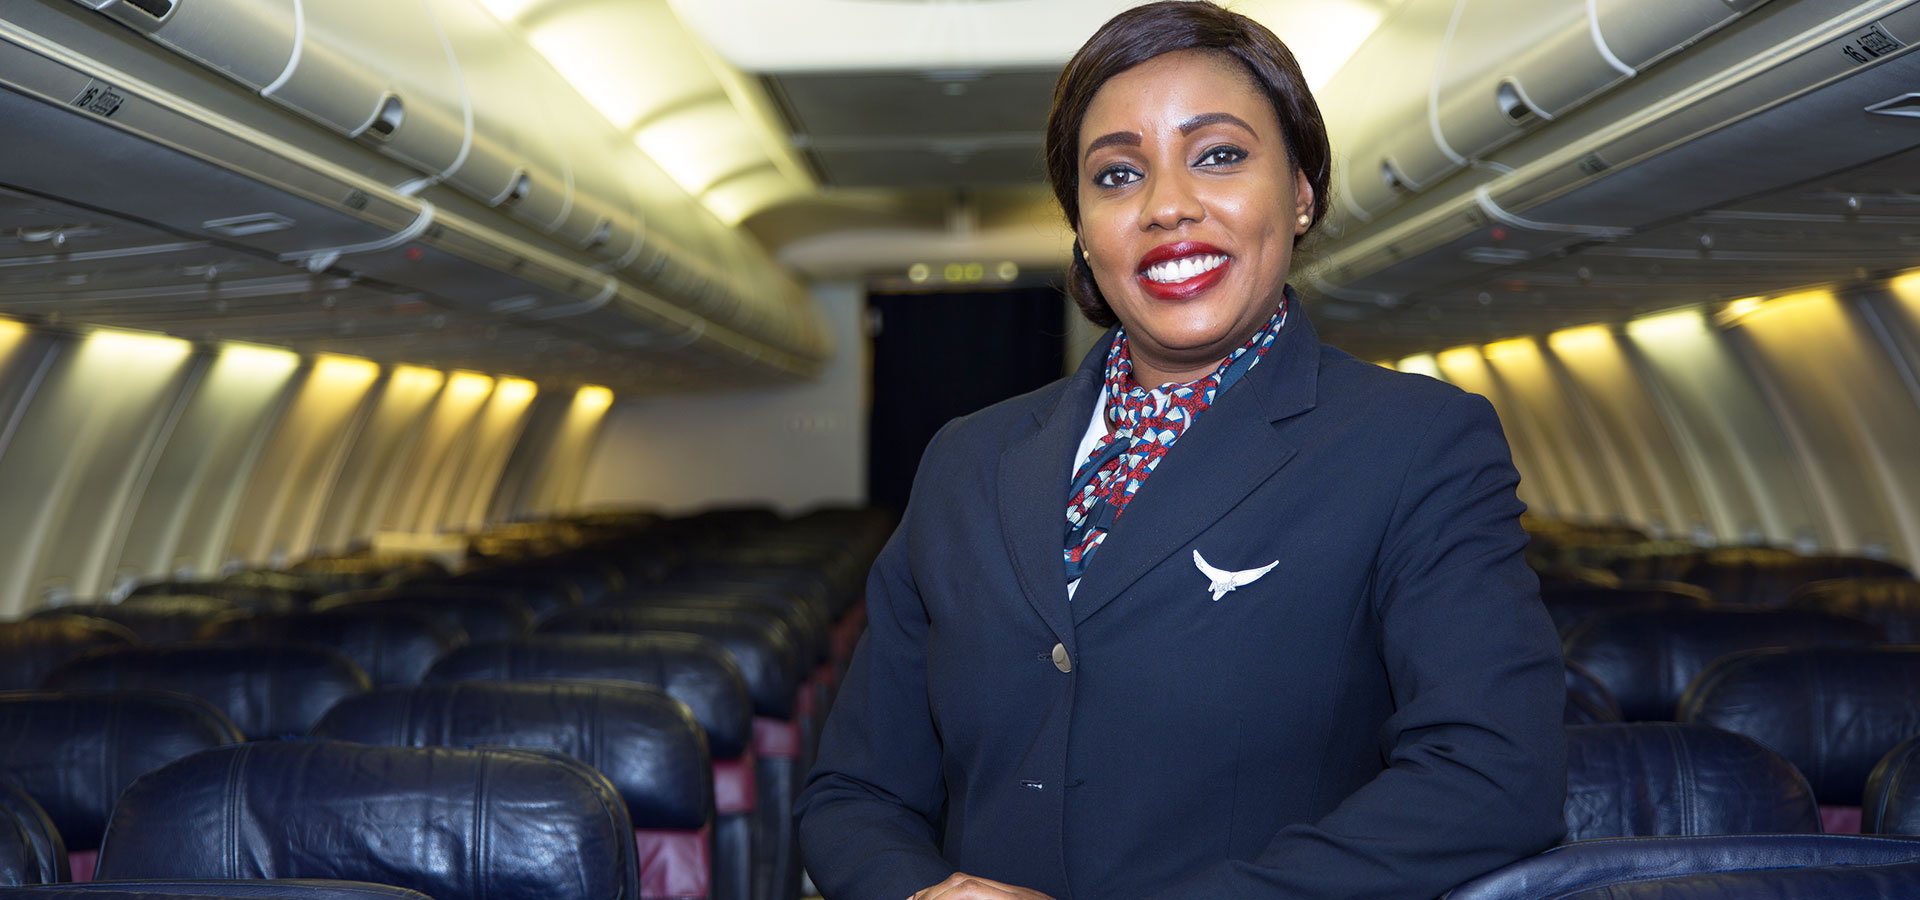 Fly Arik Air - Book flights to and from Nigeria & West Africa with Arik Air,  West-Africa's leading airline offering domestic, regional and international  flights.